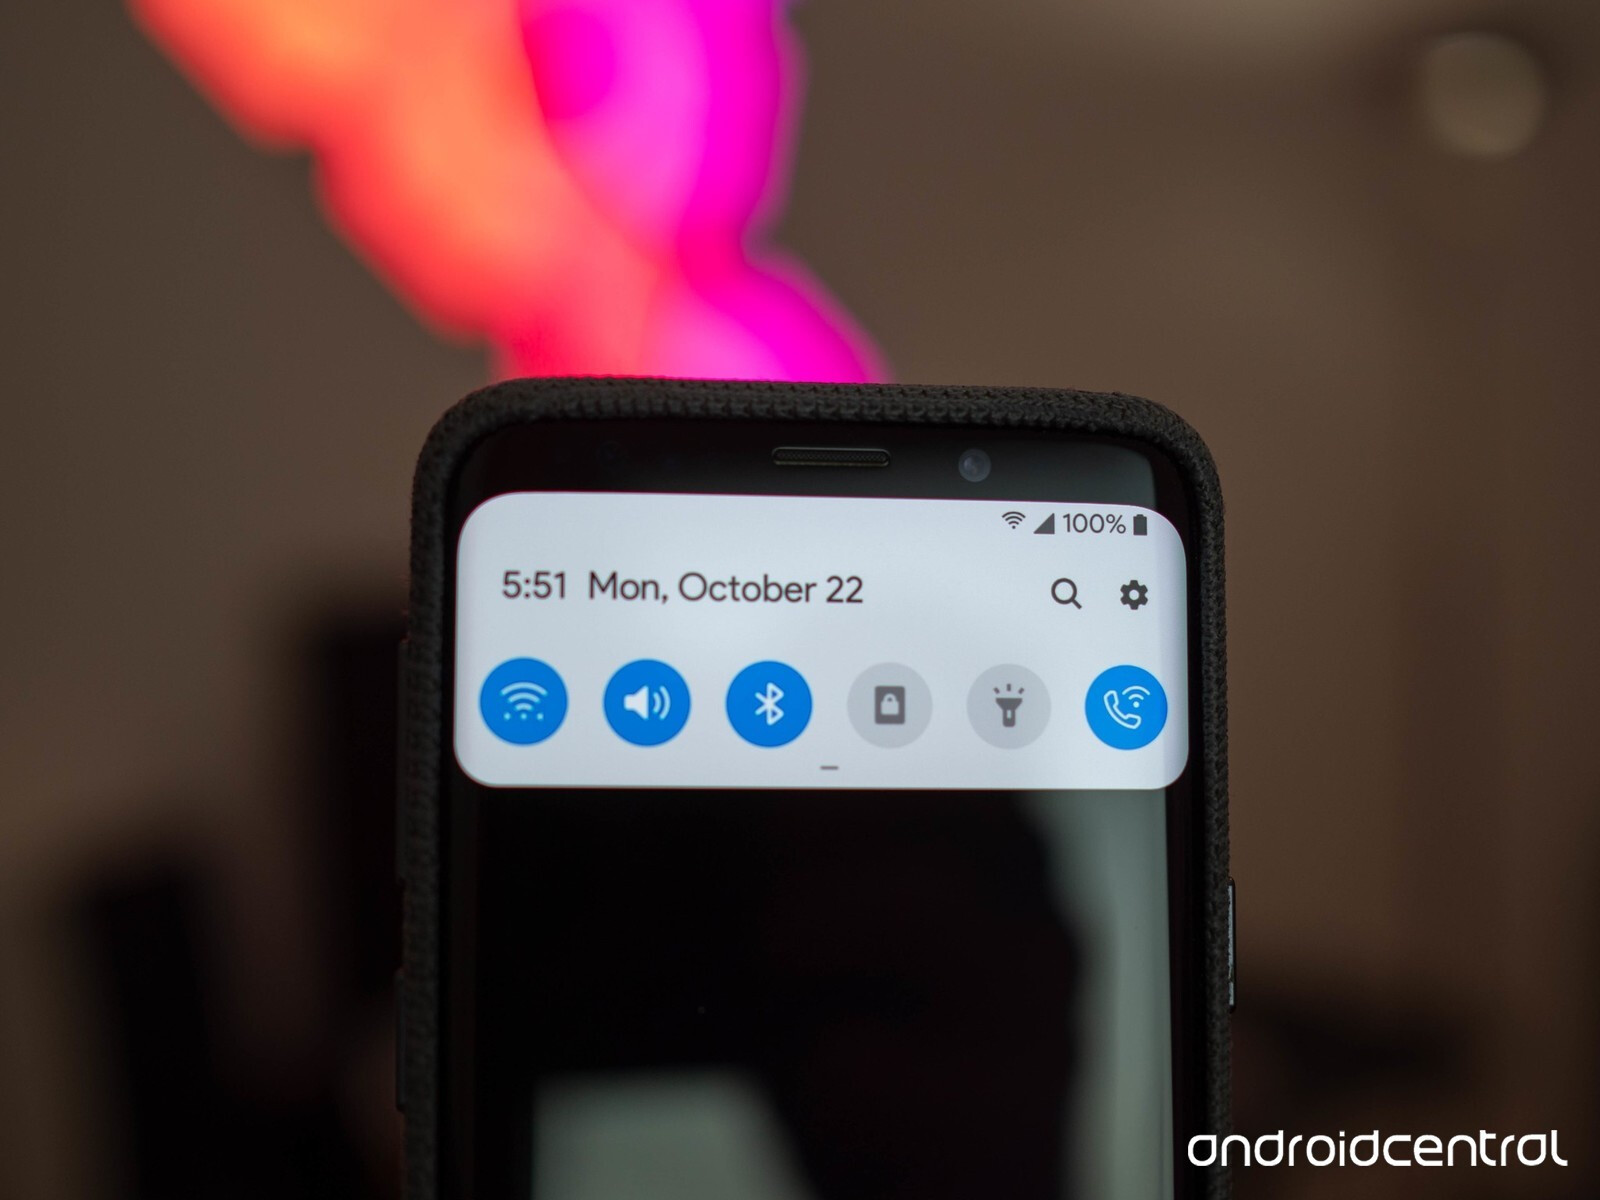 More pictures of Android 9 Pie on the Samsung Galaxy S9+: